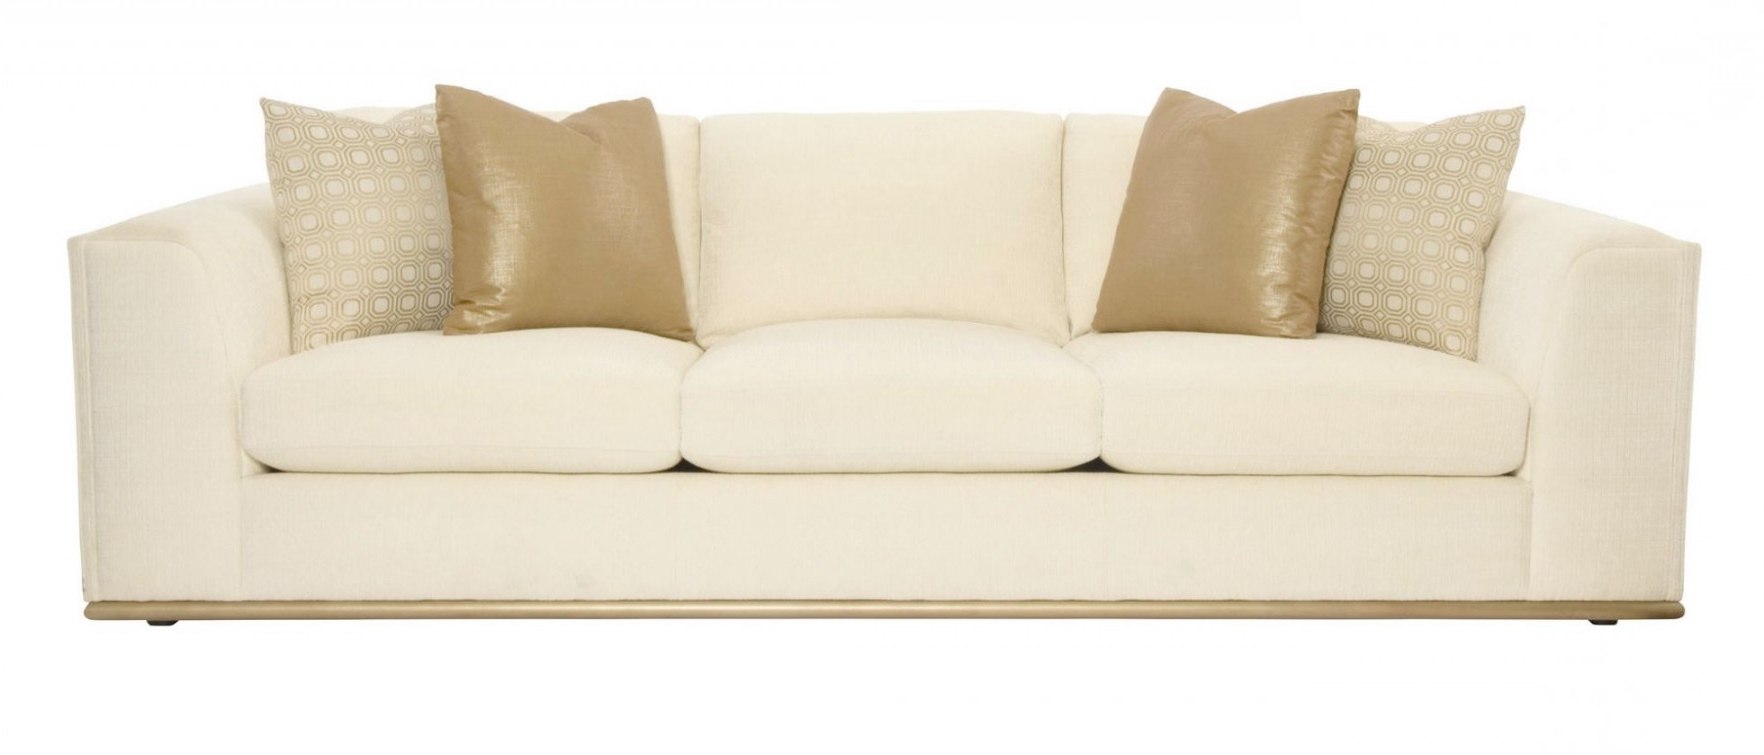 2019 Dillards Sectional Sofas Throughout Leather Sofa Dillards (View 17 of 20)